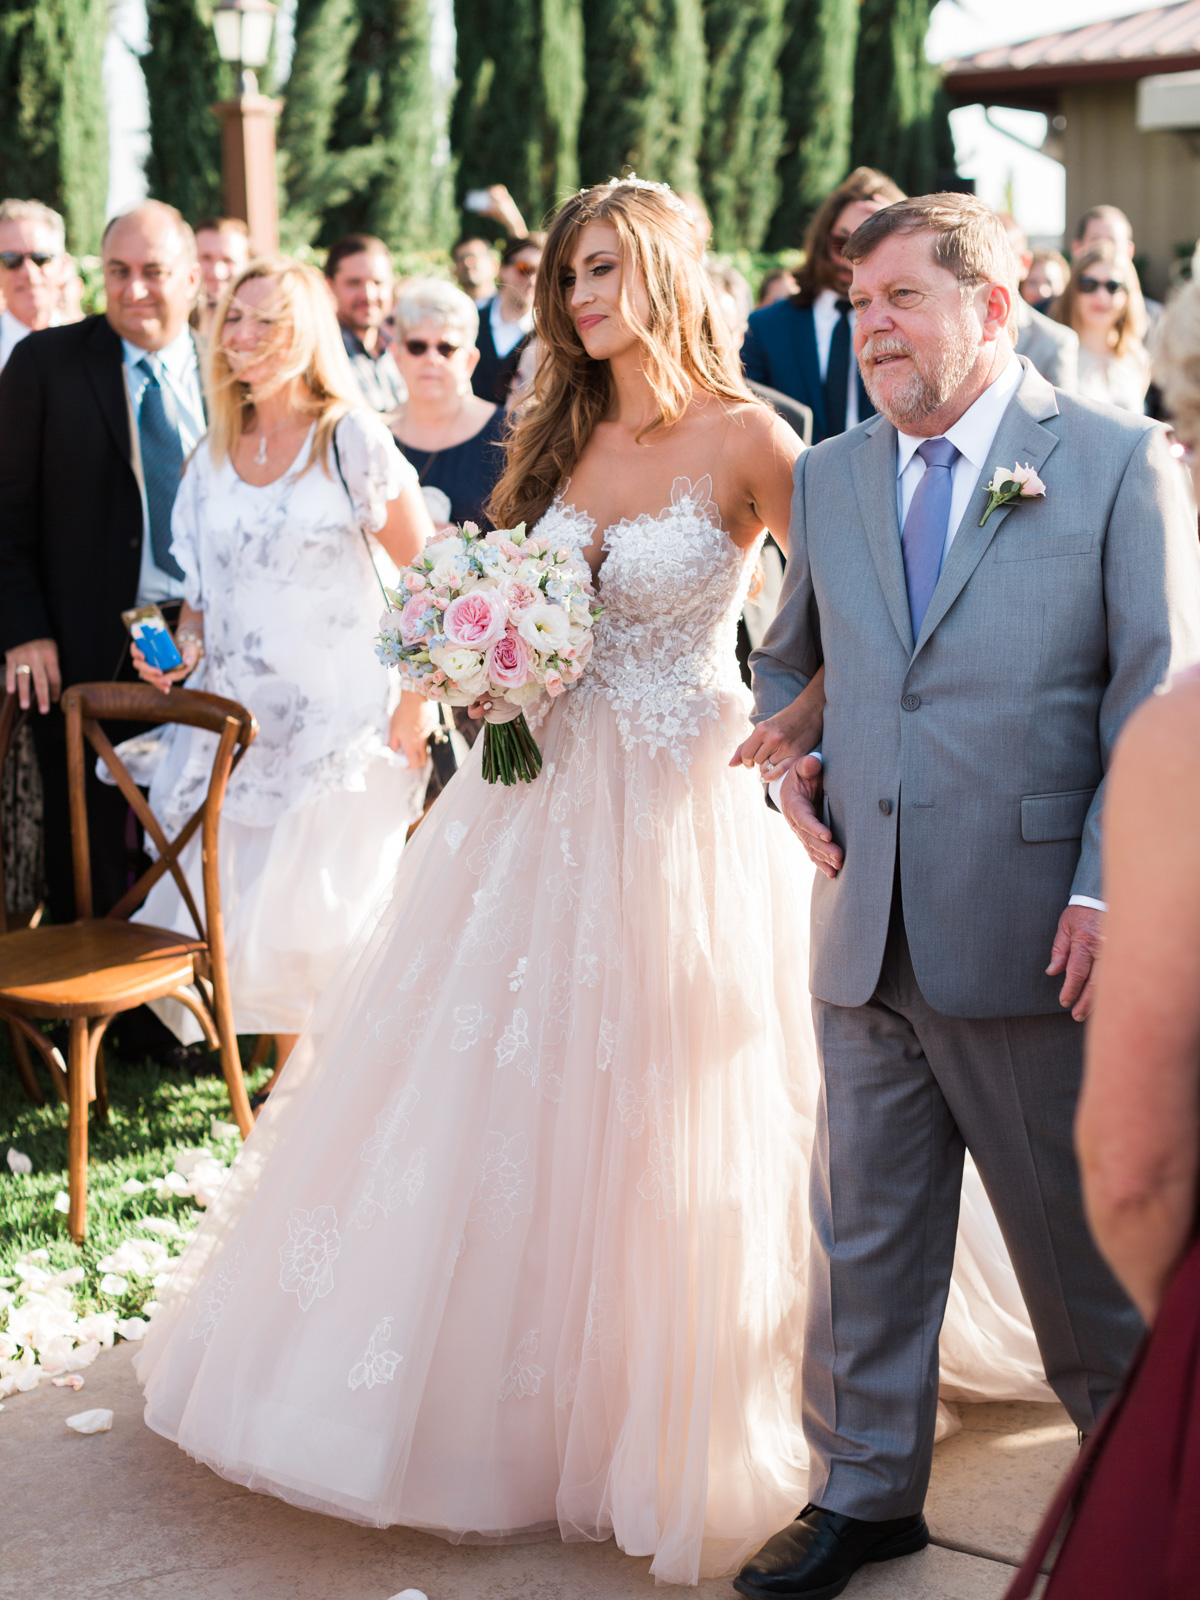 Father walking daughter down the aisle |Harrison & Jocelyne's gorgeous Temecula wedding at Wiens Family Cellars captured by Betsy & John | Temecula Wedding Photographers